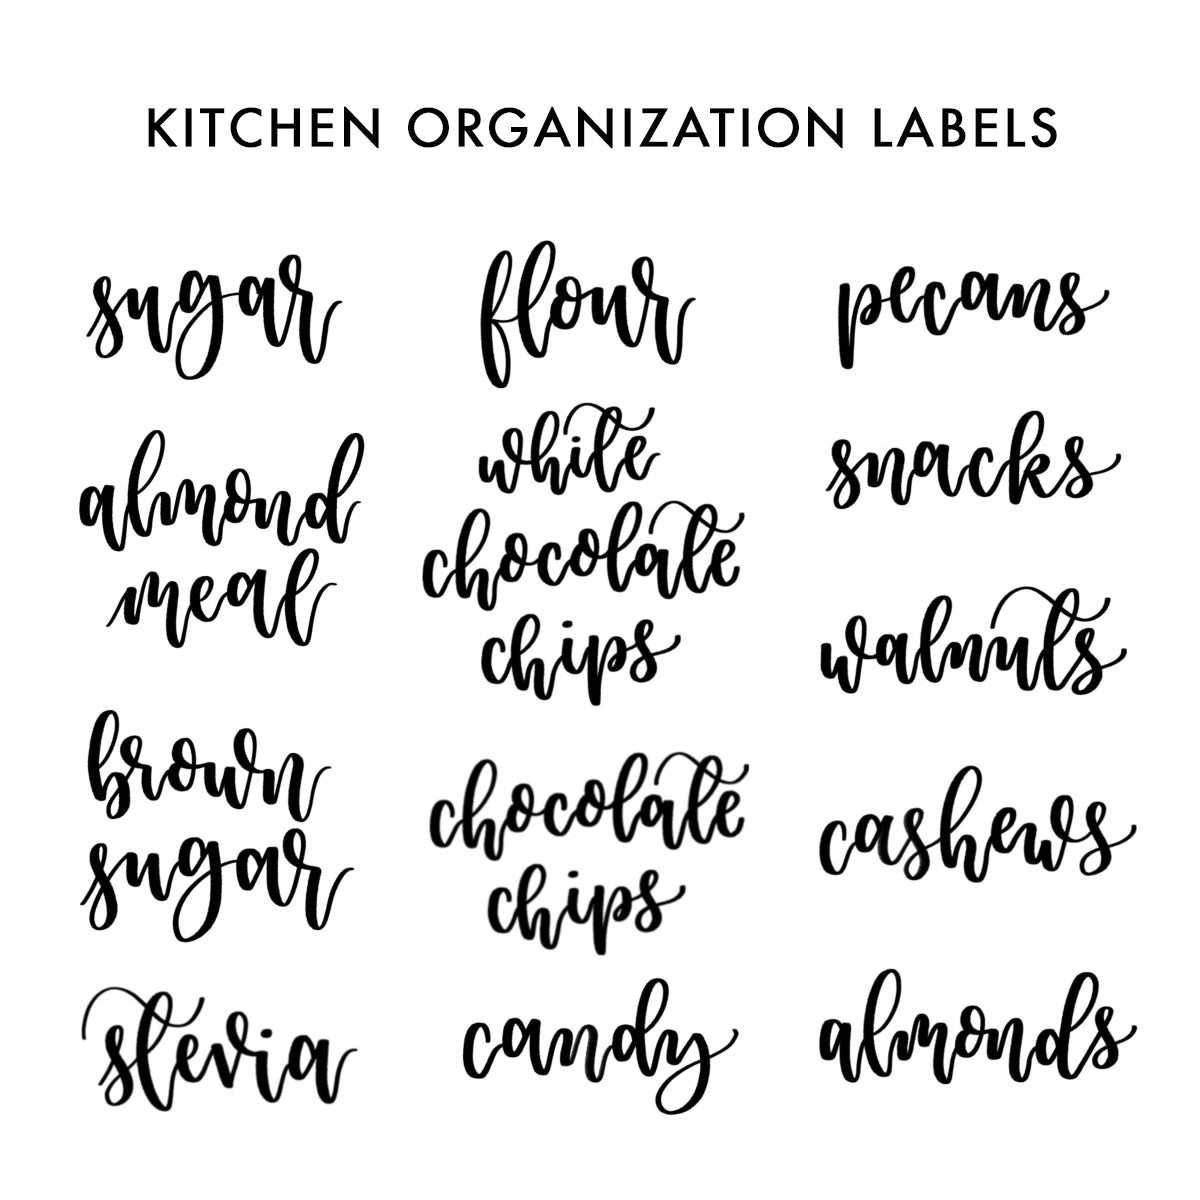 Vinyl Home Organization Labels